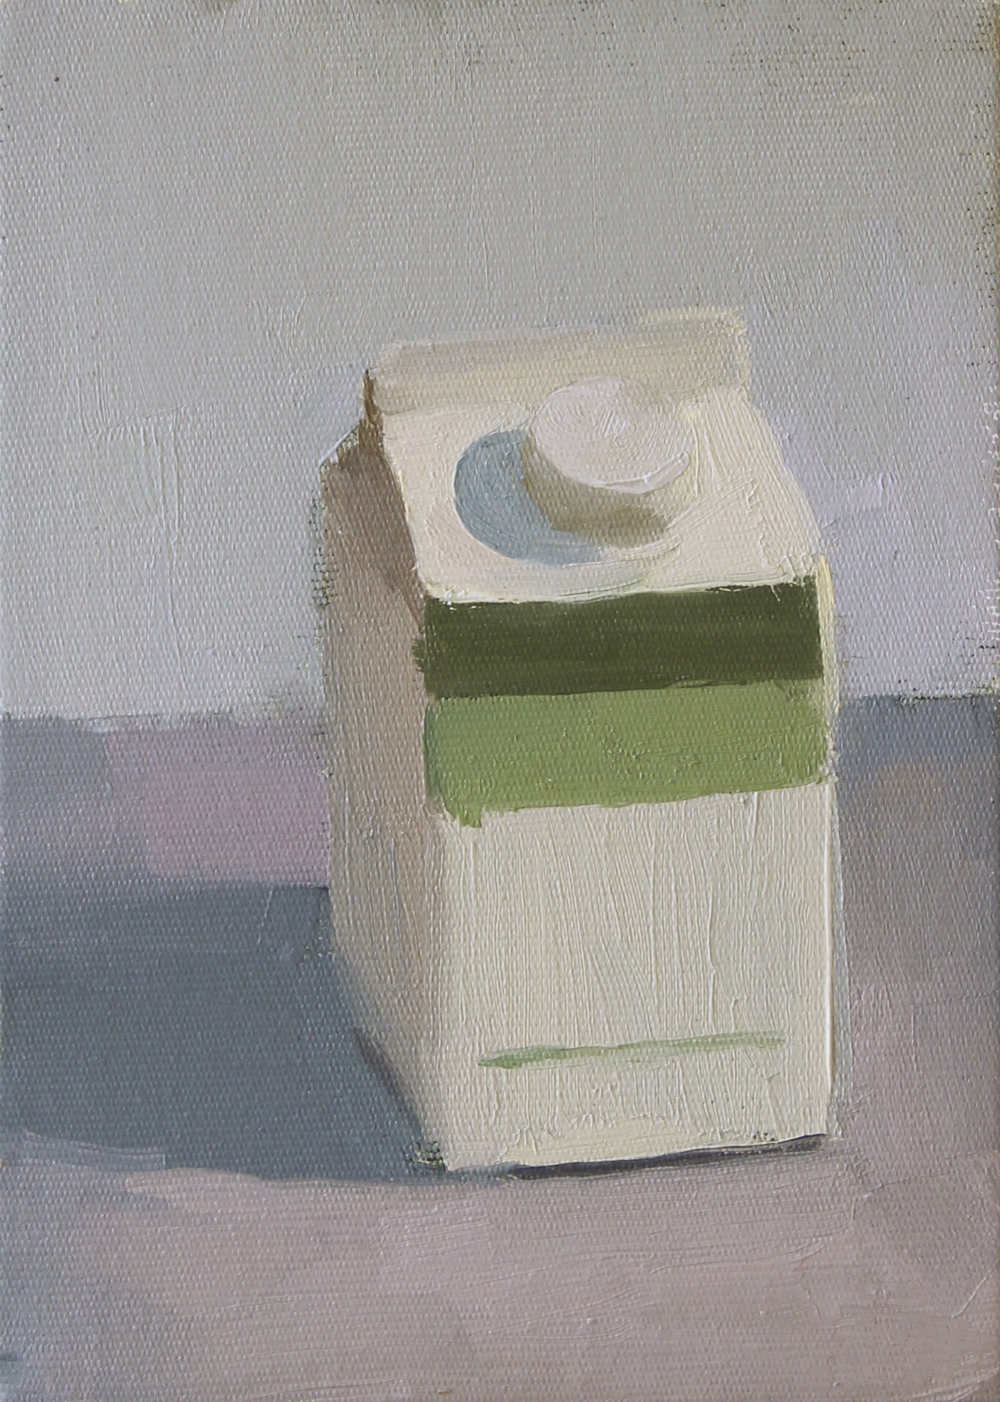 "half & half   oil on canvas  5x7""  2012"